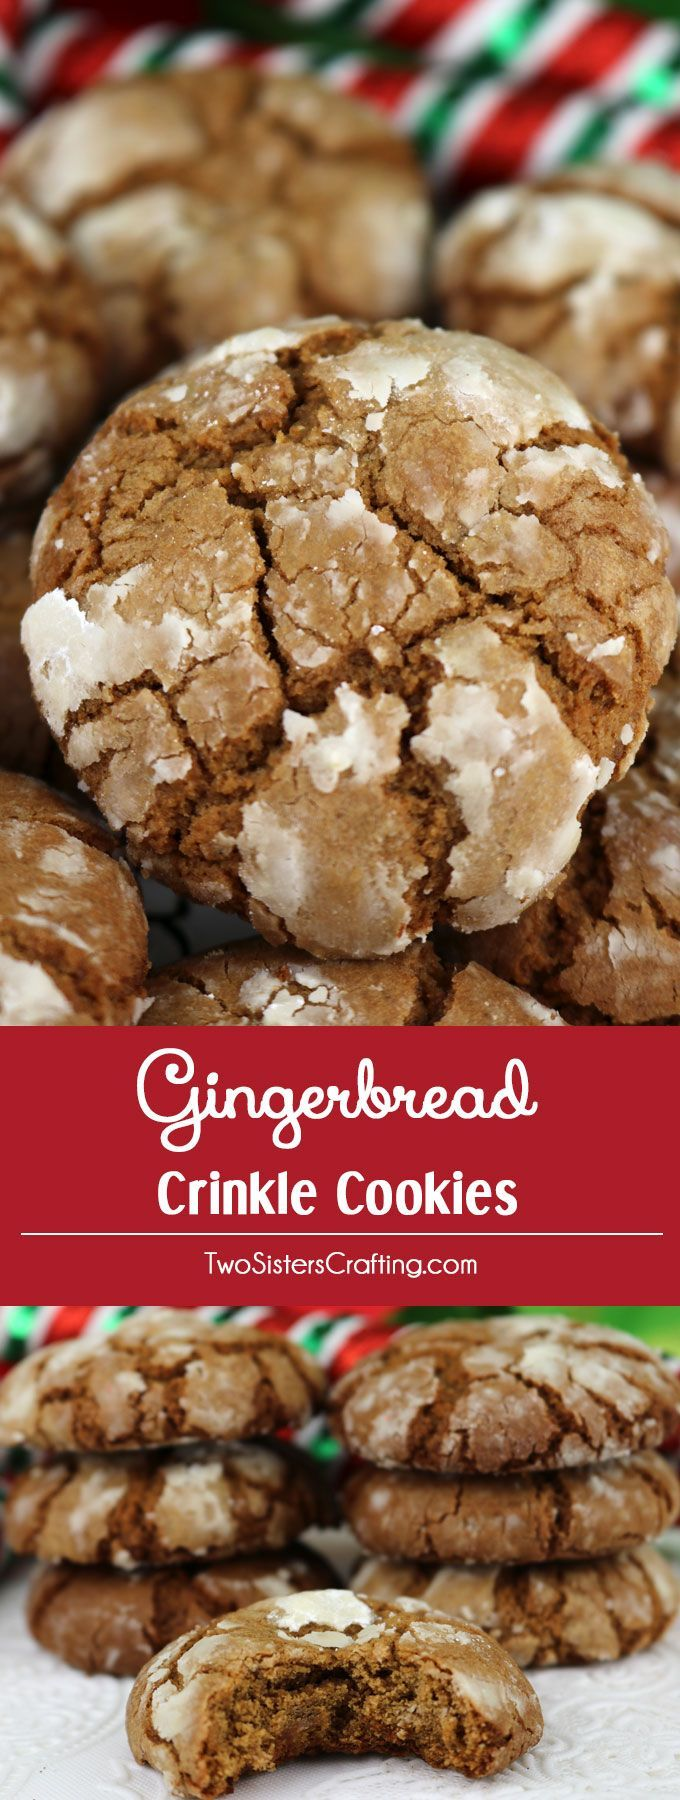 Gingerbread Crinkle Cookies - light, fluffy and spicy on the inside and sweet and crunchy on the outside. #ChristmasCookies #ChristmasTreats